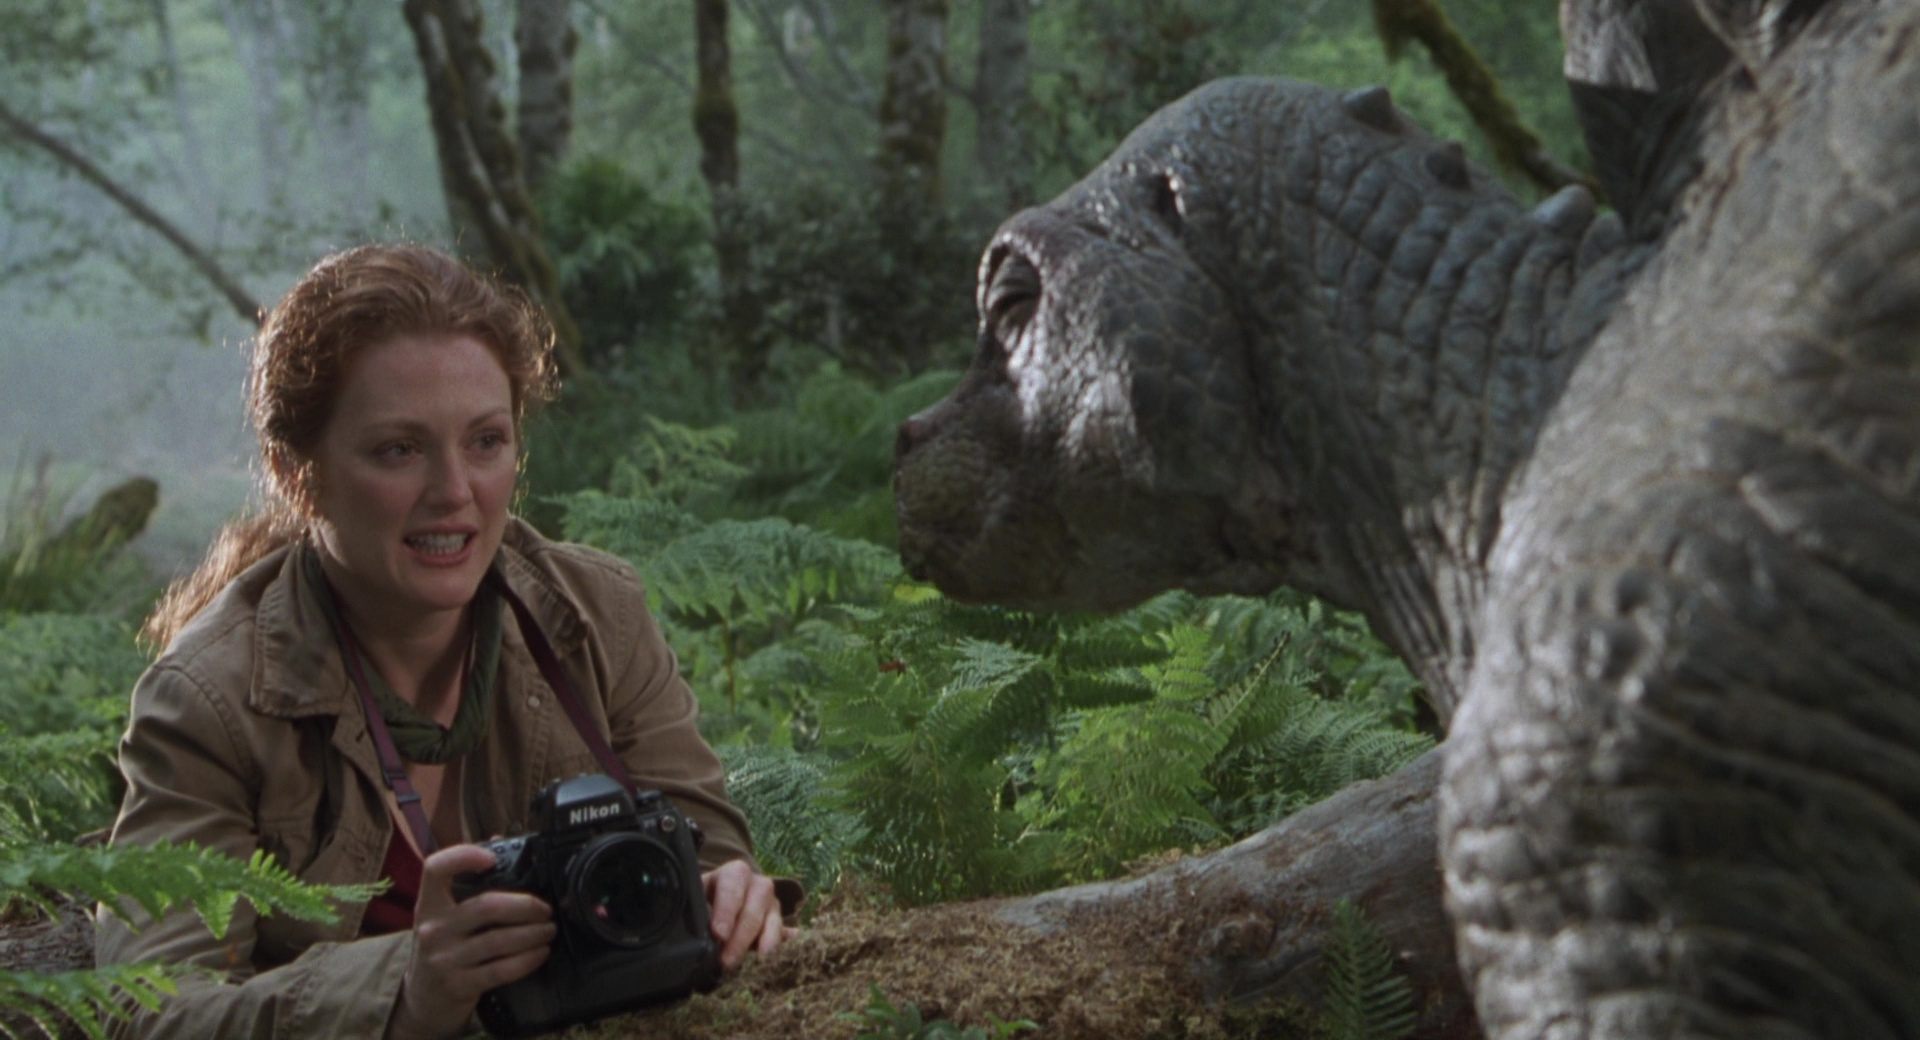 List Of Car Brands >> Nikon Photo Cameras Used by Julianne Moore in The Lost World: Jurassic Park (1997) Movie